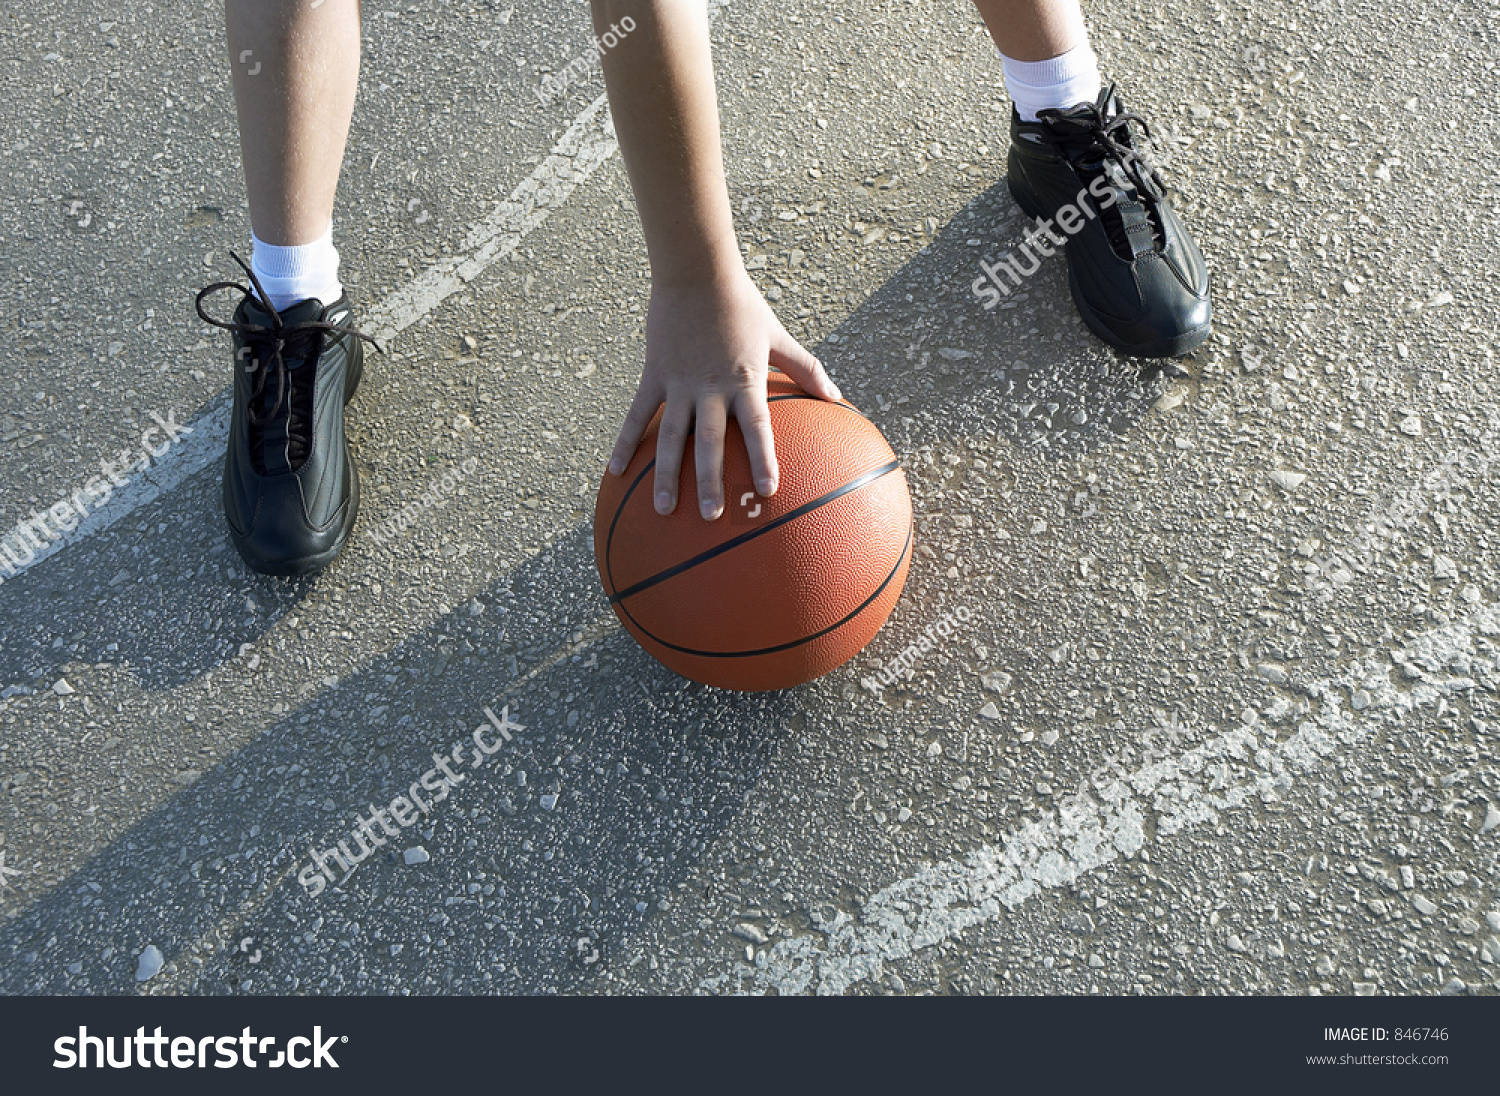 Basketball Outside Stock Photo 846746 : Shutterstock